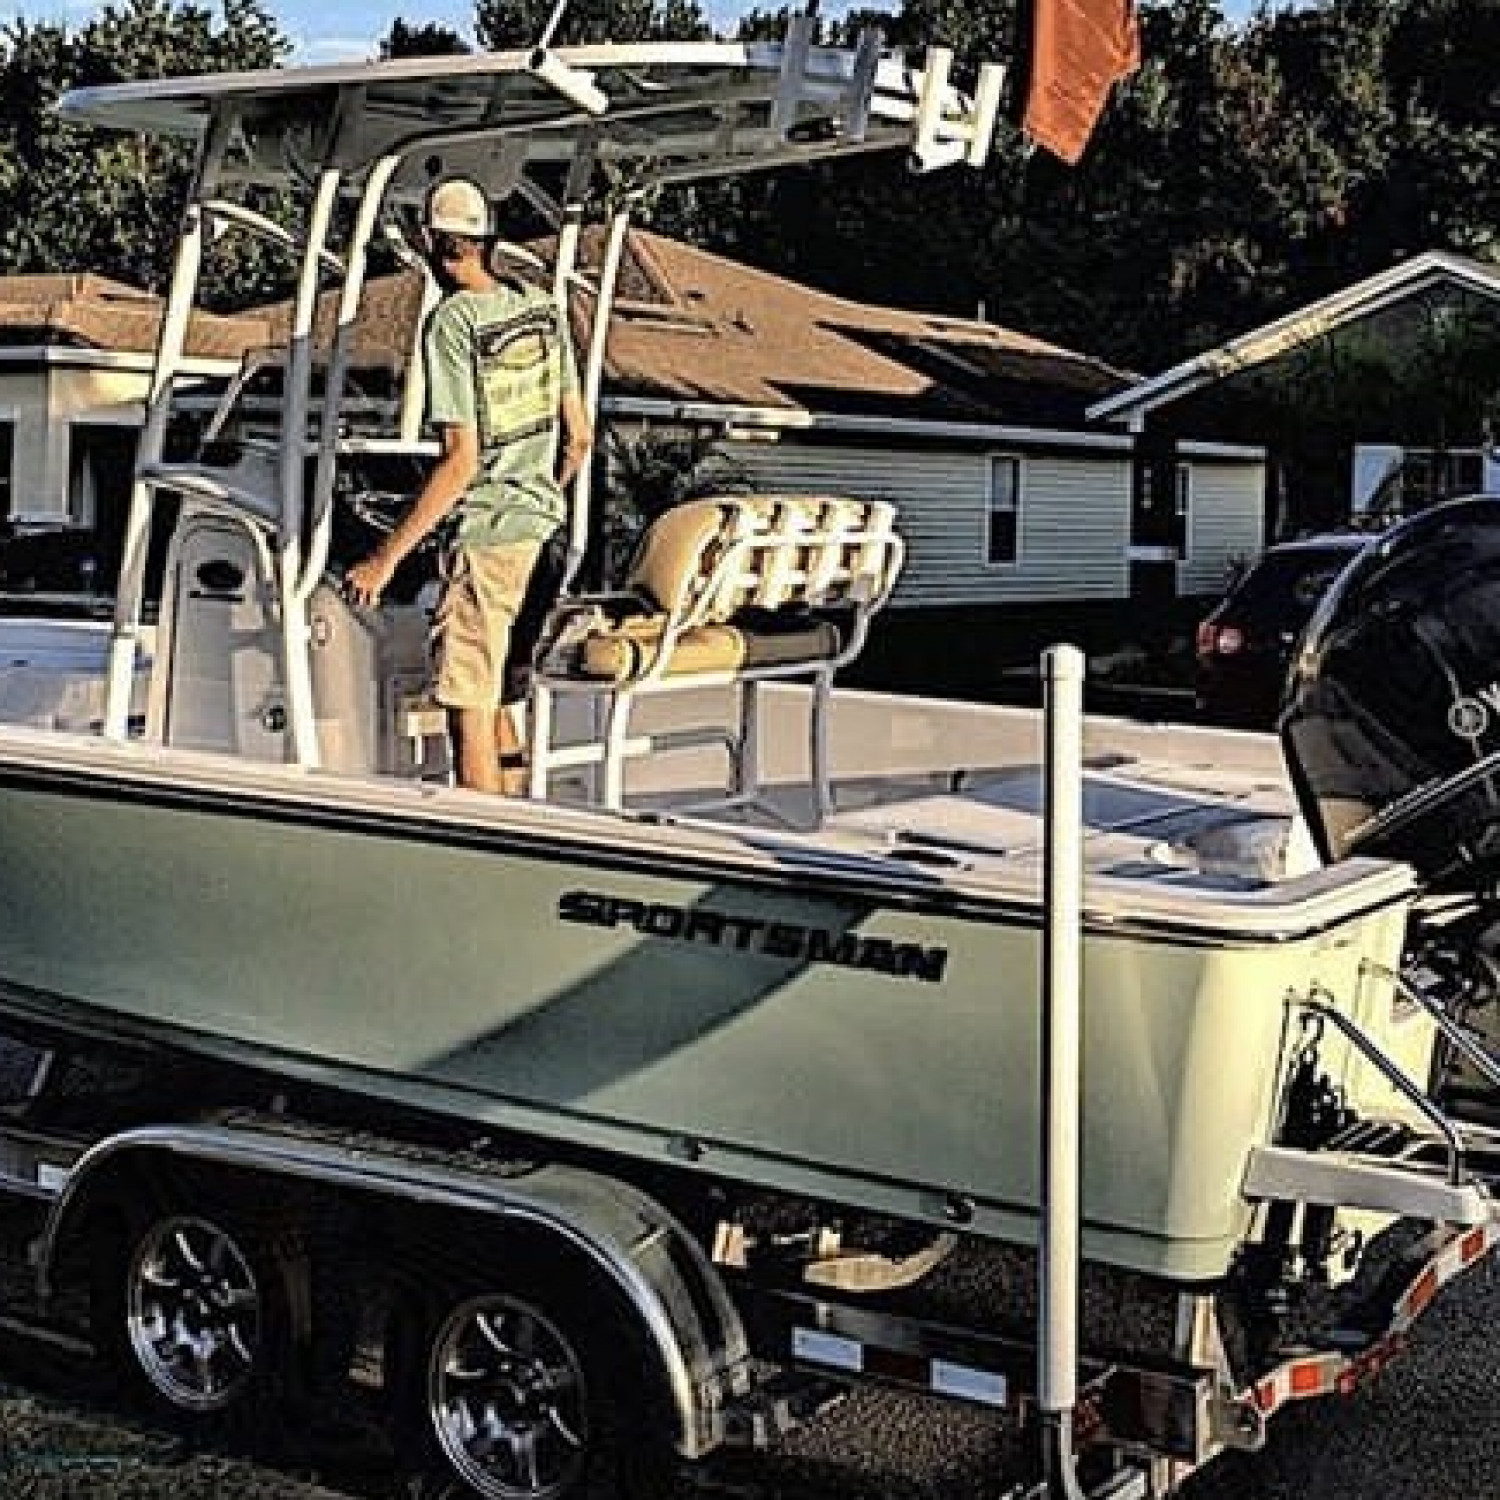 Title: clean boat is a happy boat - On board their Sportsman Masters 227 Bay Boat - Location: st.augustine, fl. Participating in the Photo Contest #SportsmanFebruary2018